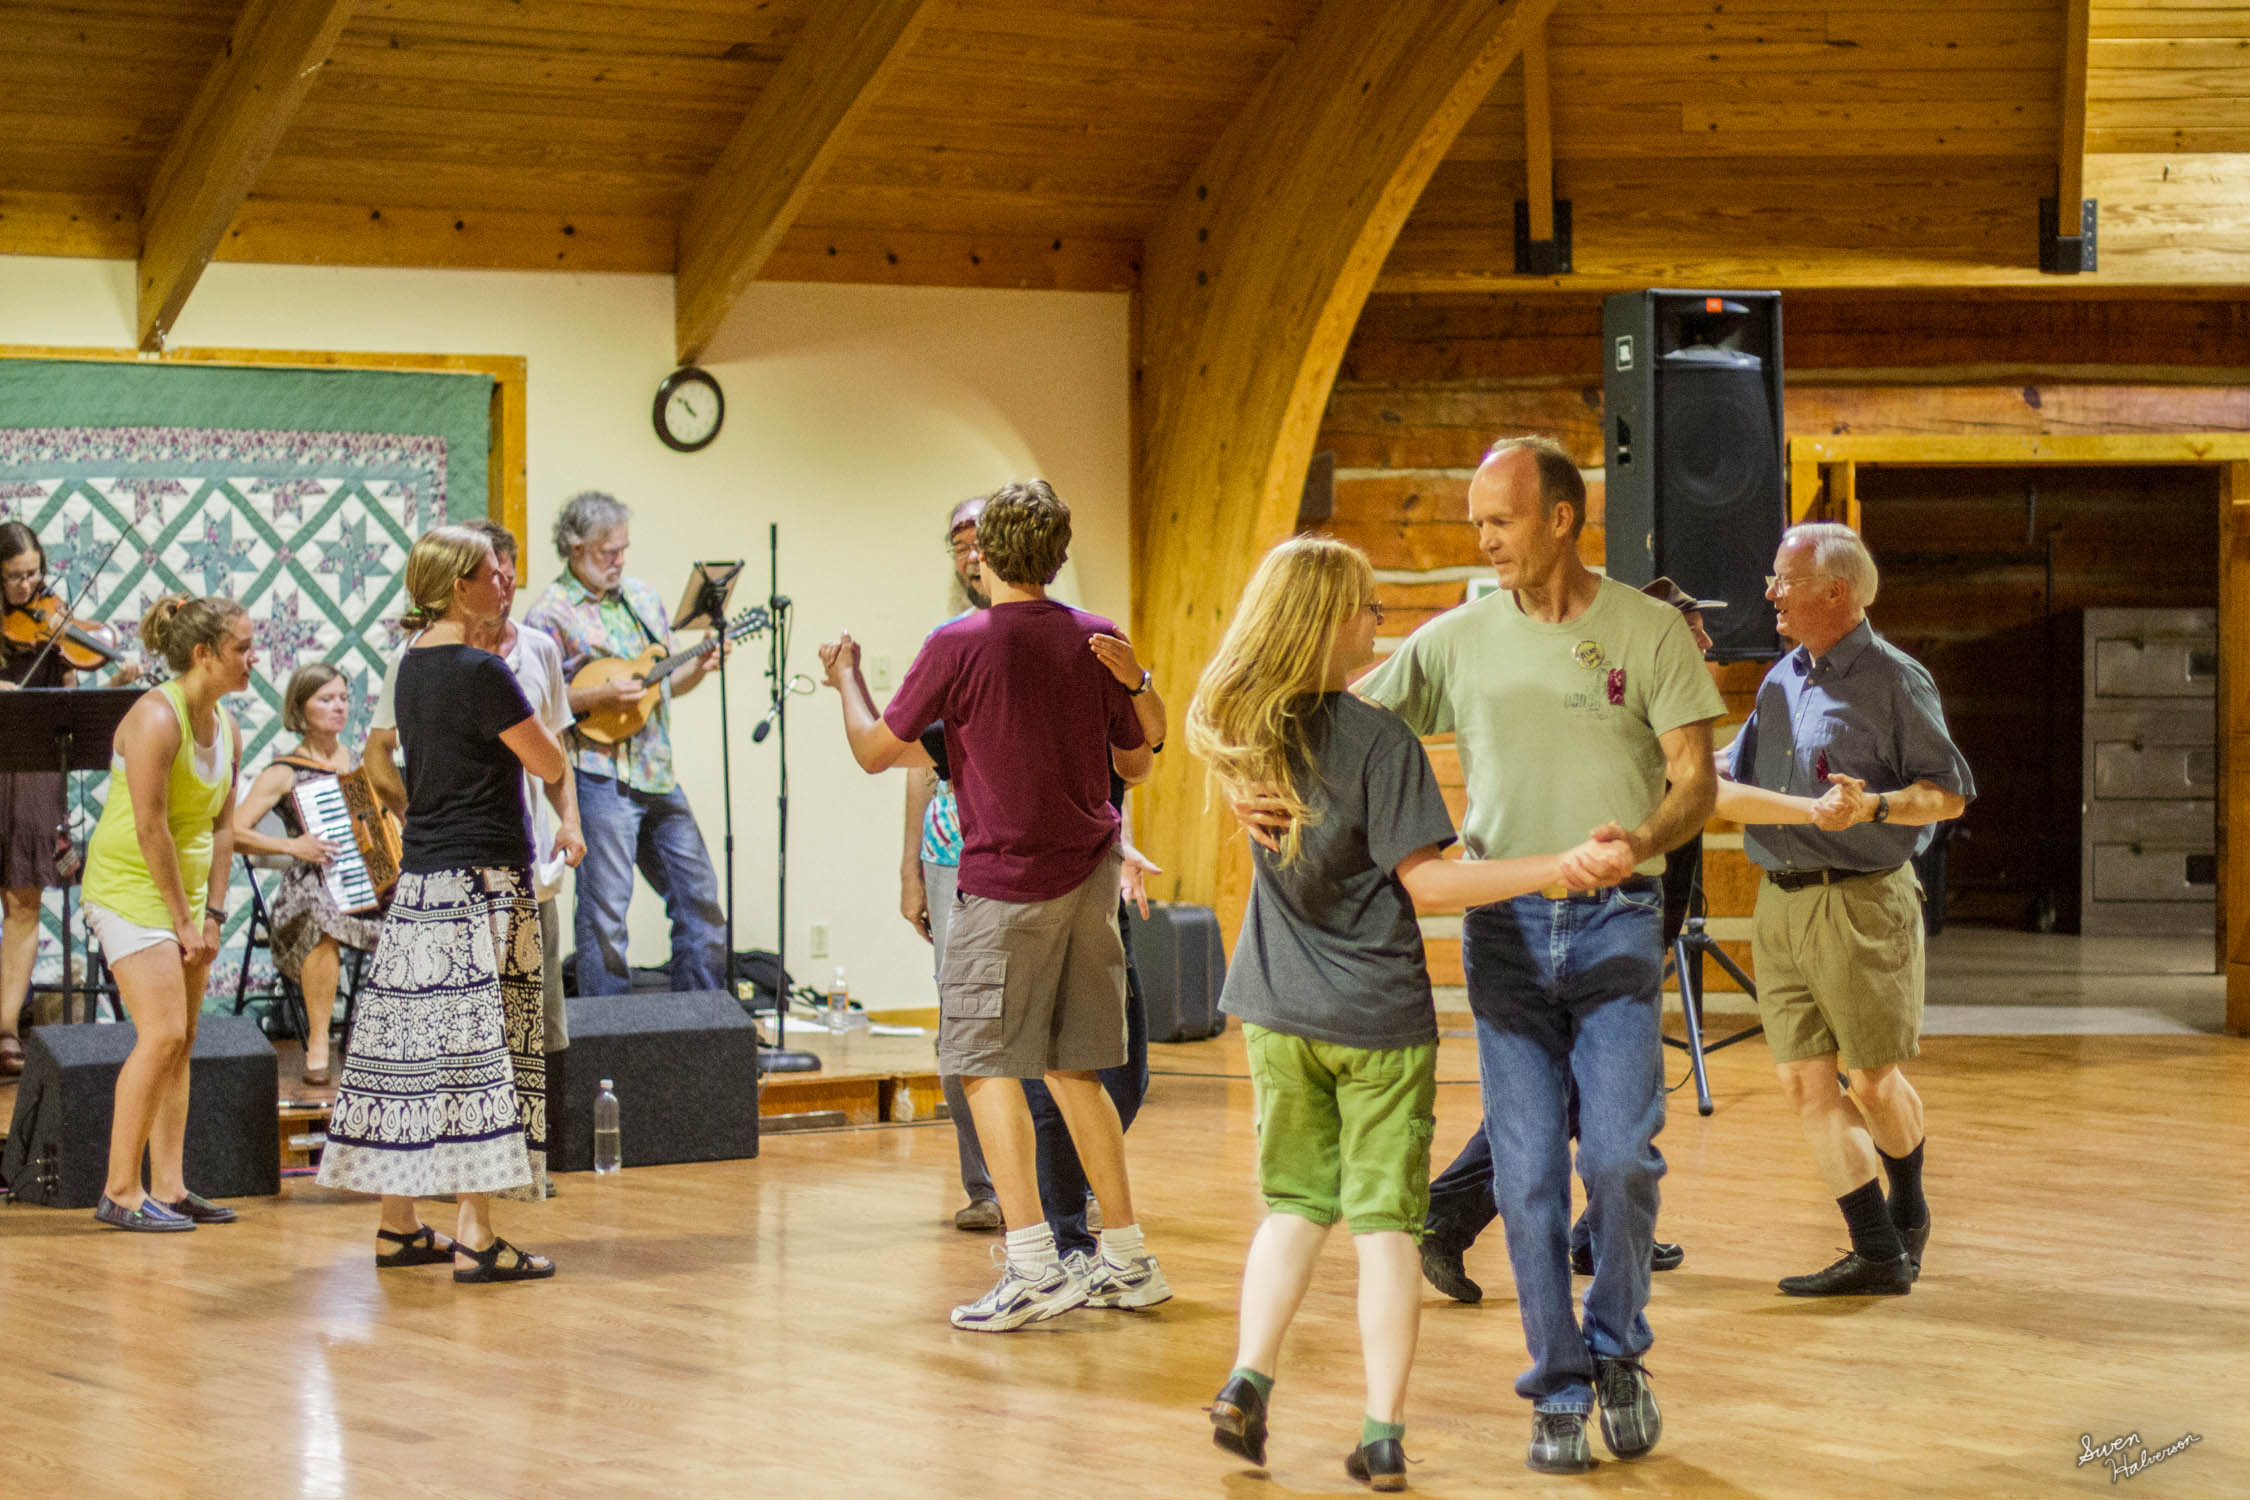 Contra dancing in Berea-054.jpg